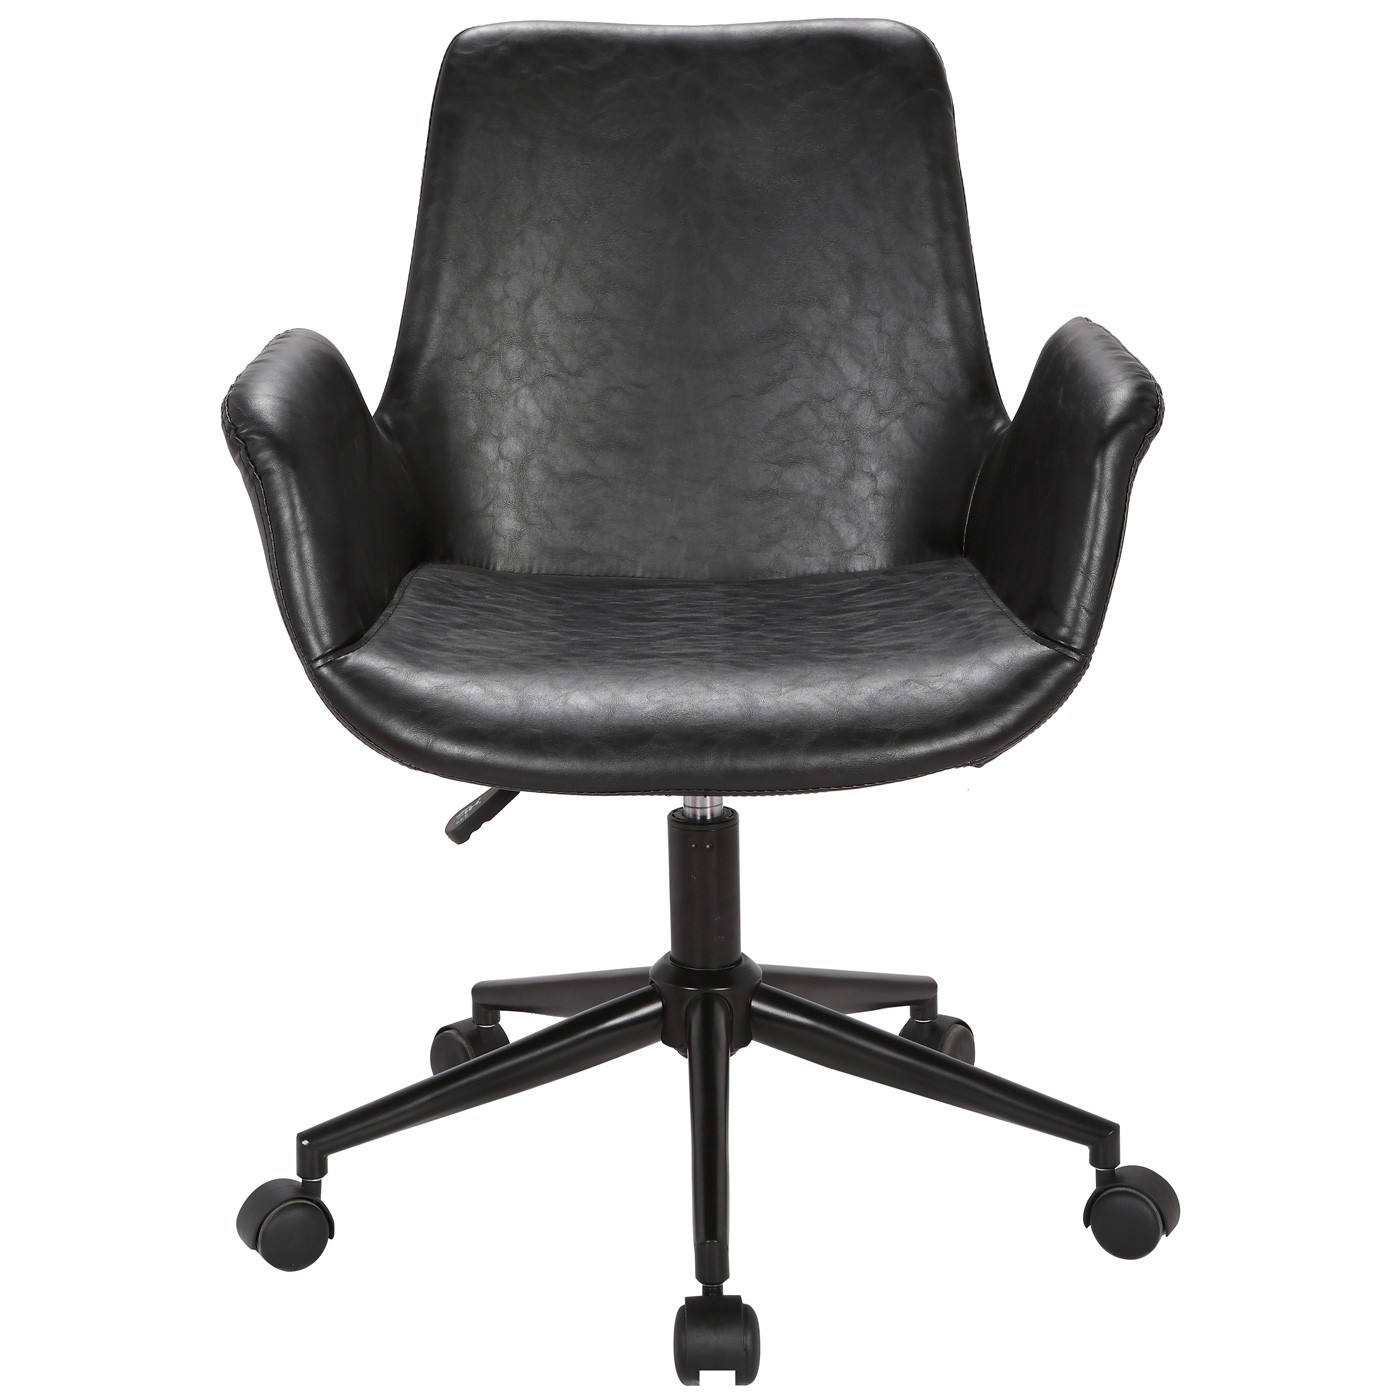 Marseille Faux Leather Office Chair, Black